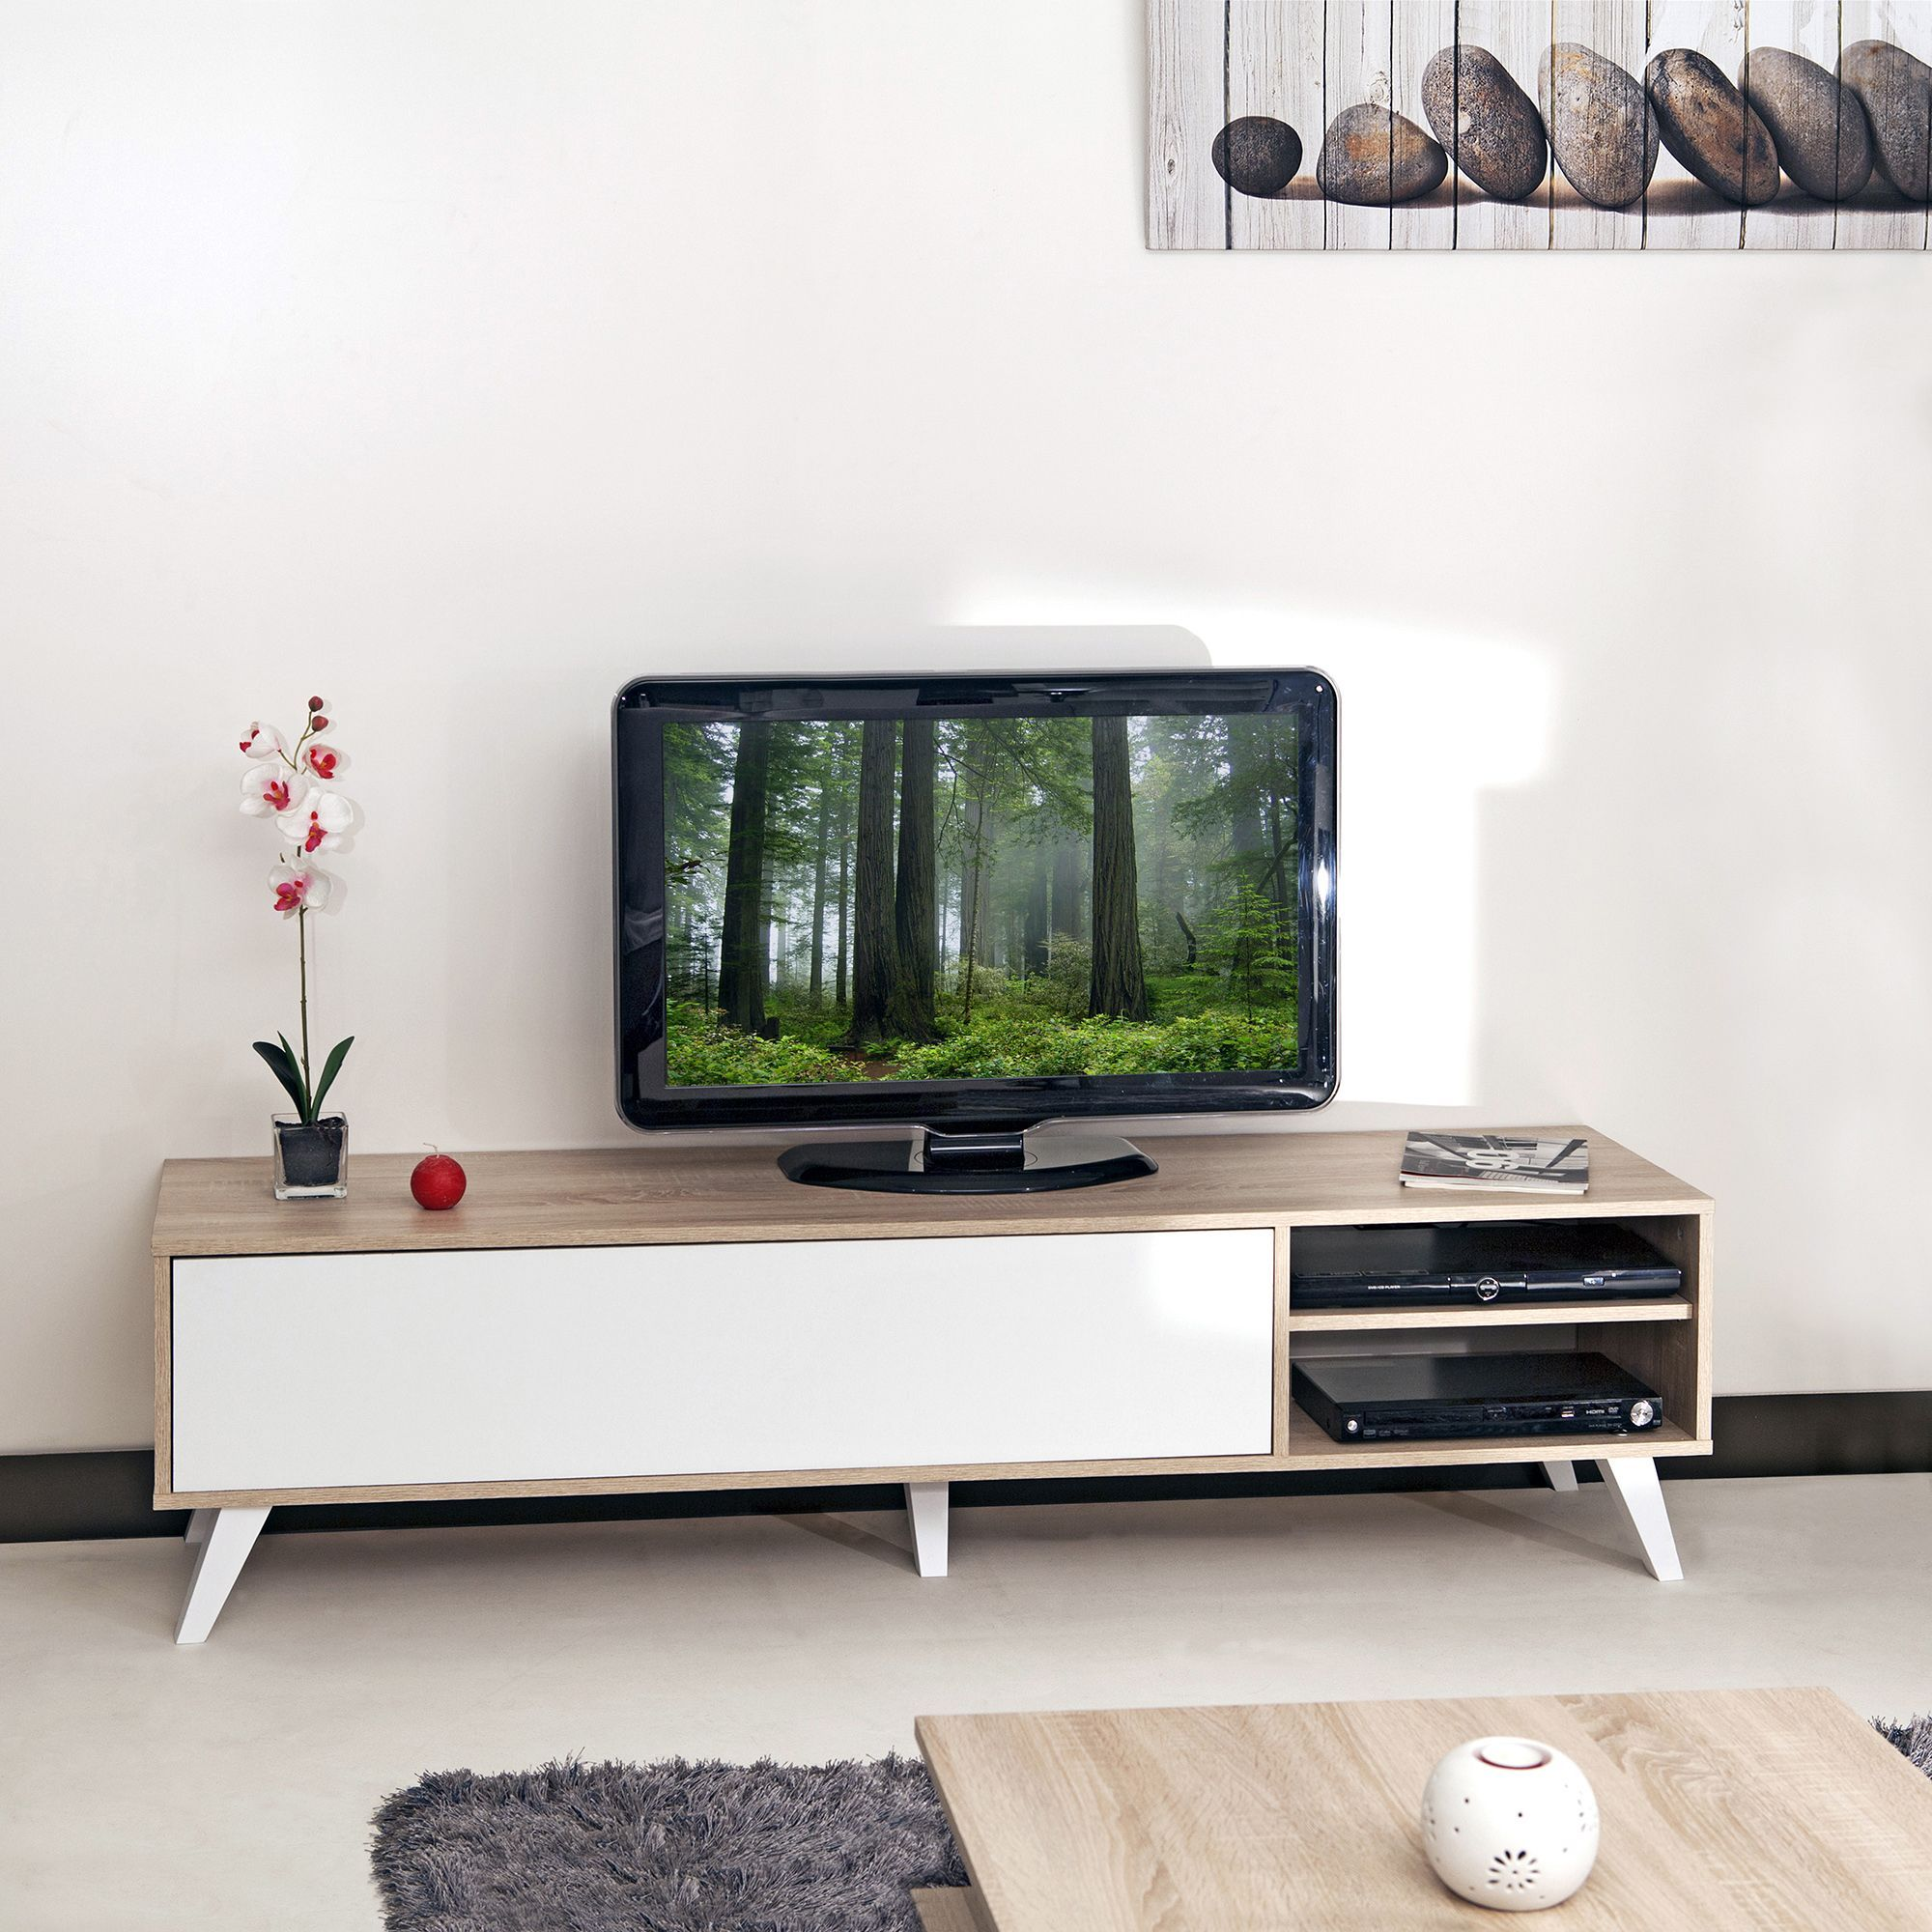 sopra meubles t l meubles accessoires tv meuble tv. Black Bedroom Furniture Sets. Home Design Ideas